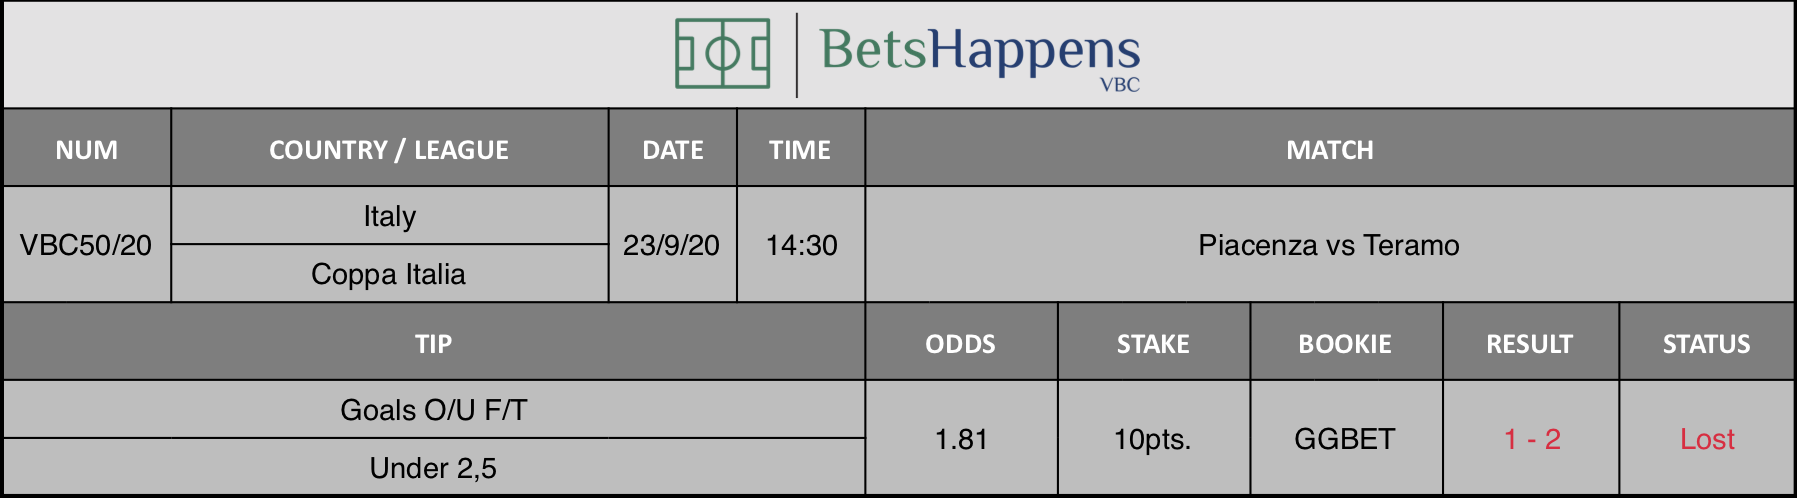 Results of our advice for the Piacenza vs Teramo match in which Goals O / U F / T Under 2,5 is recommended.